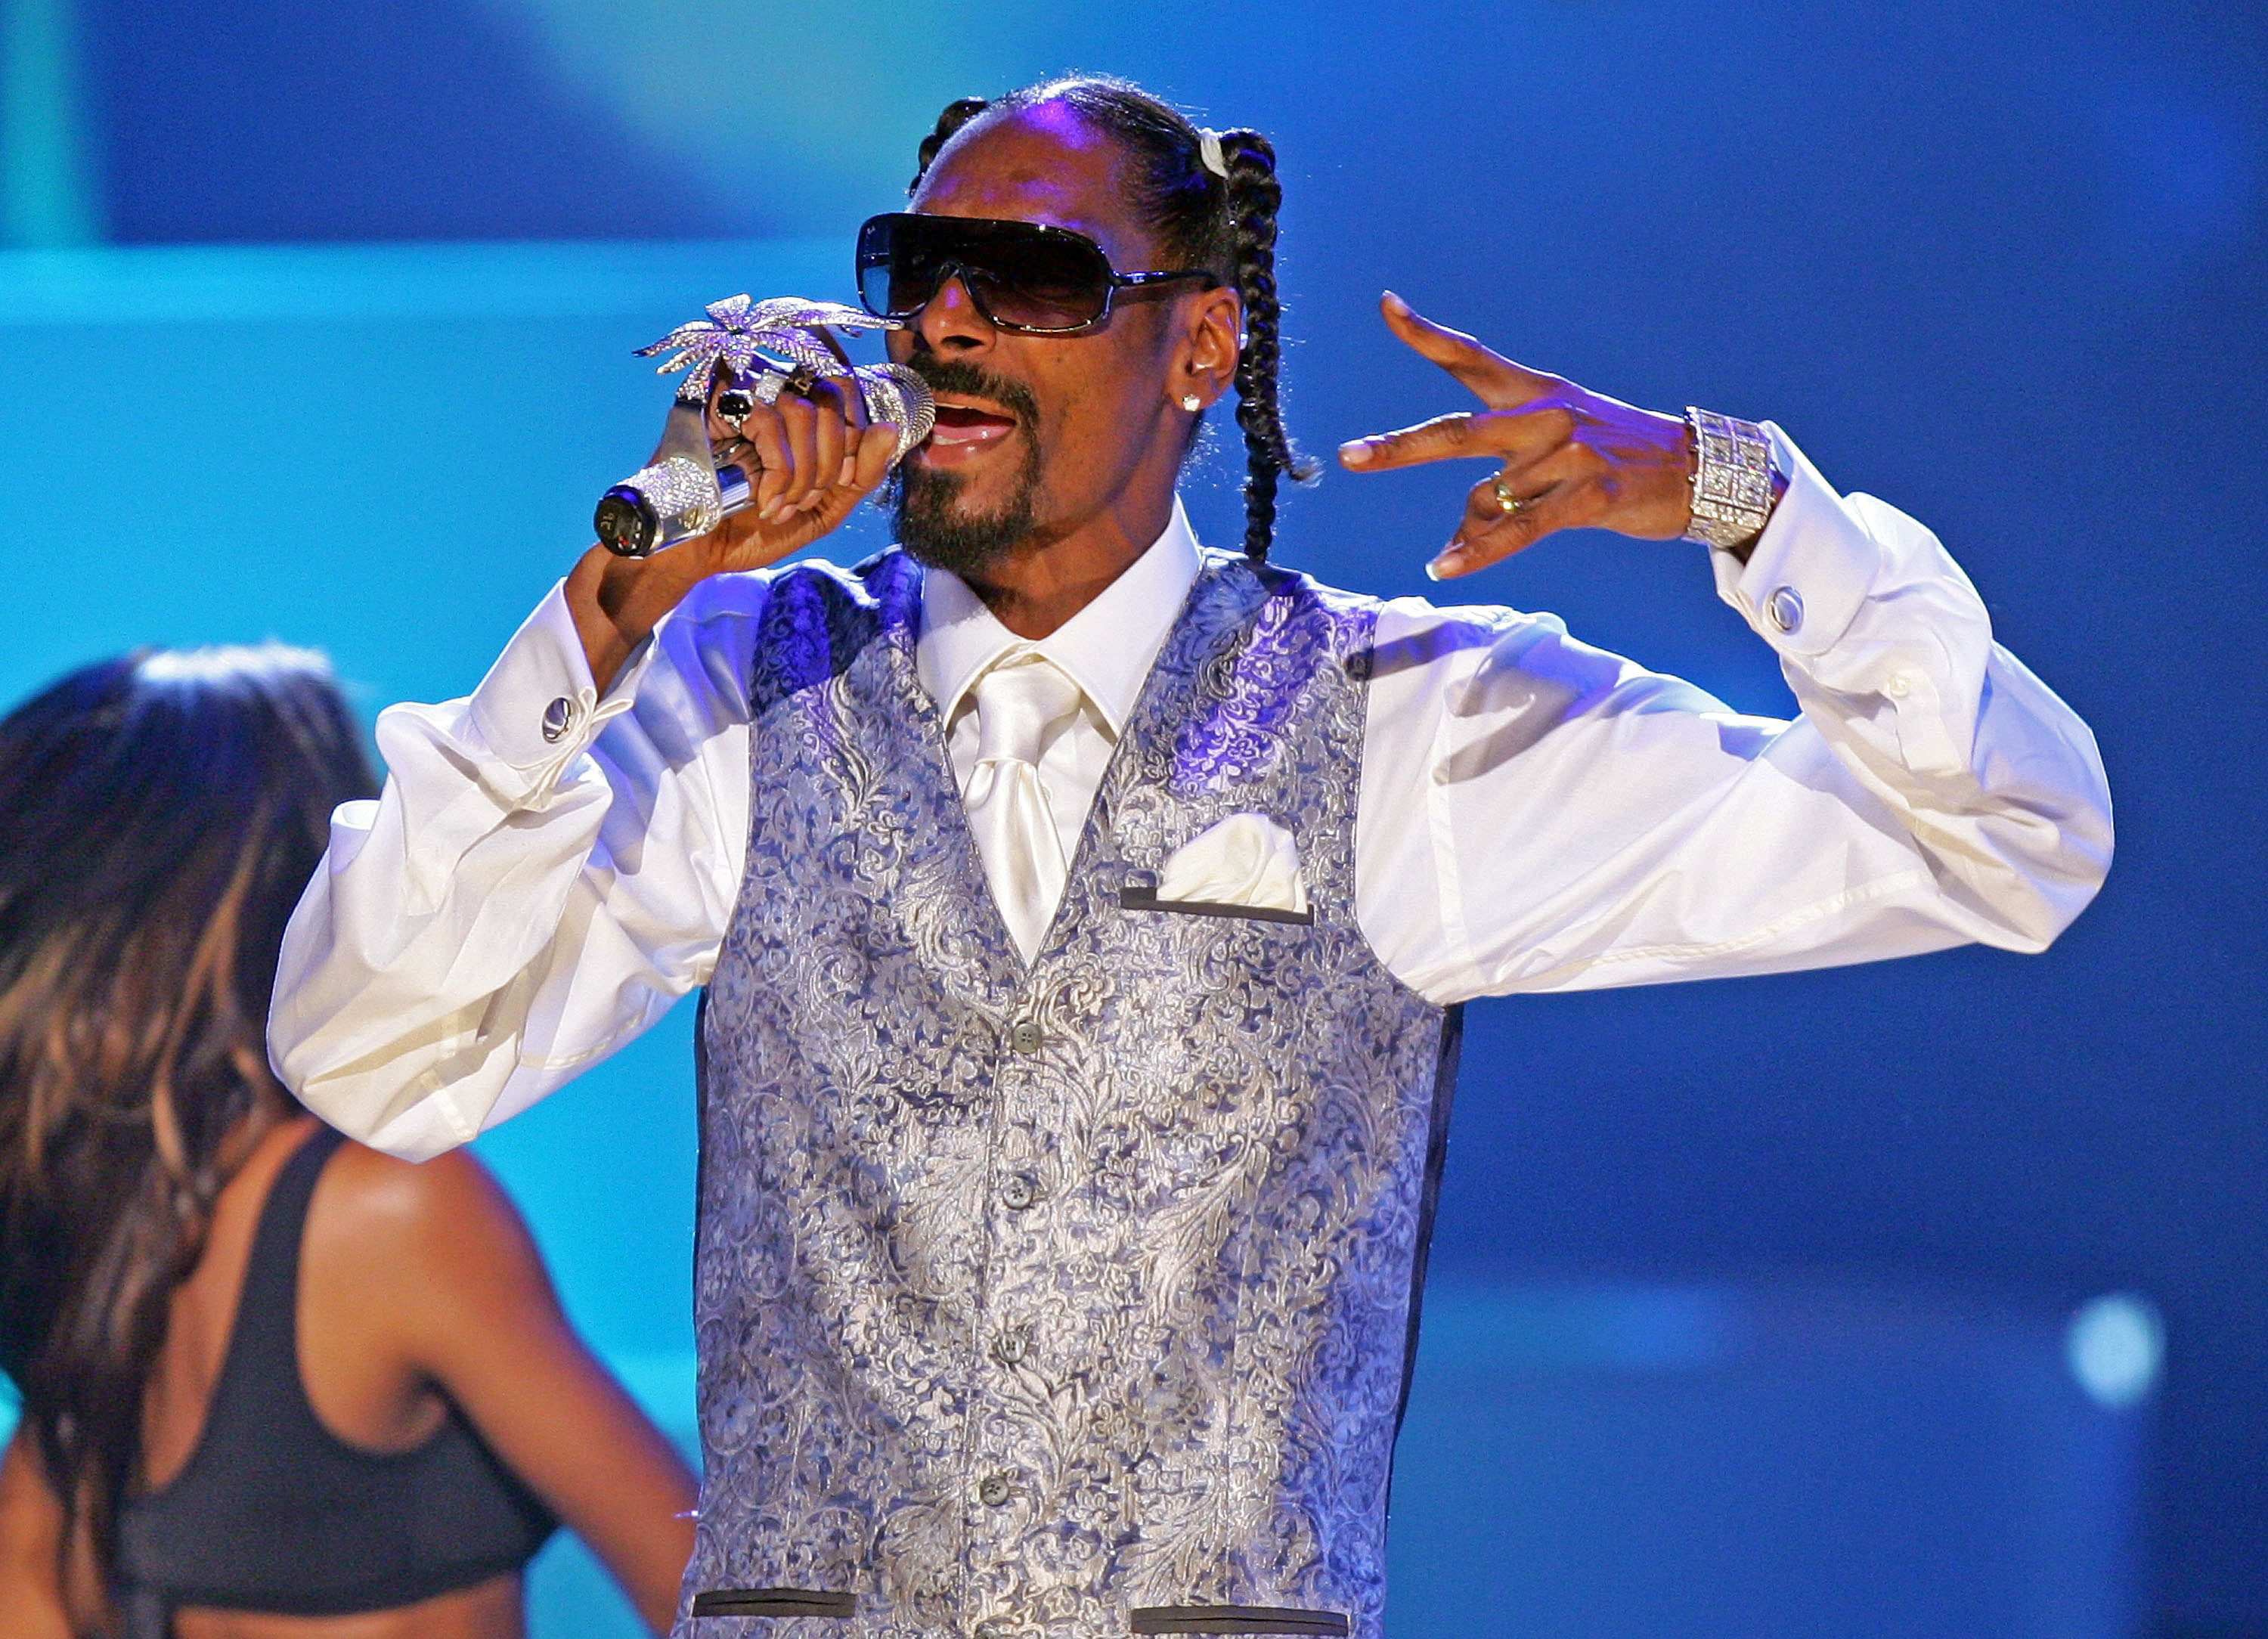 Son snoop dogg oldest Who is